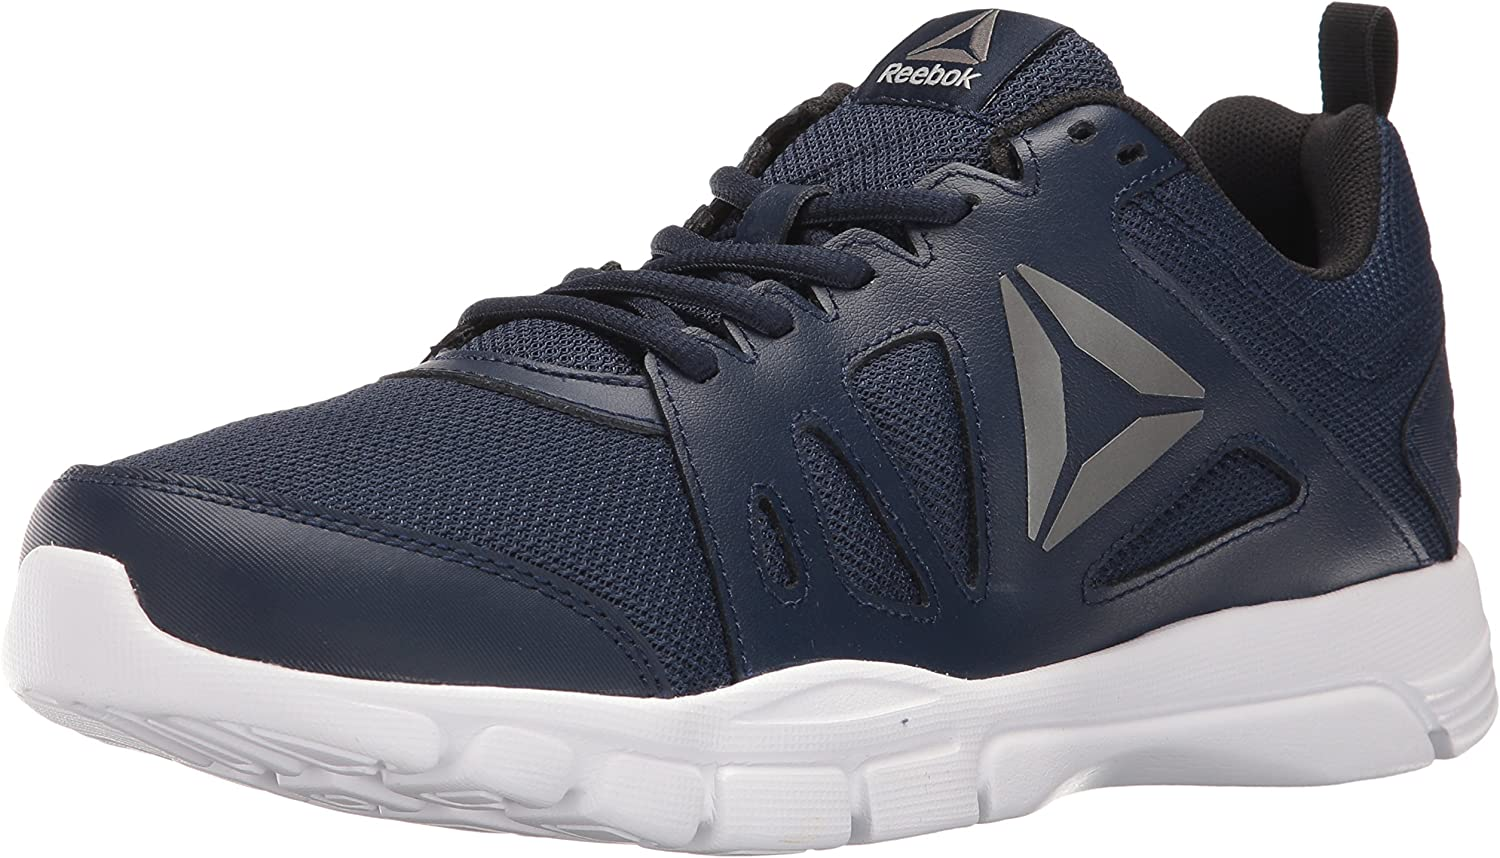 Reebok Men's Trainfusion Nine 2.0 L MT Running shoes